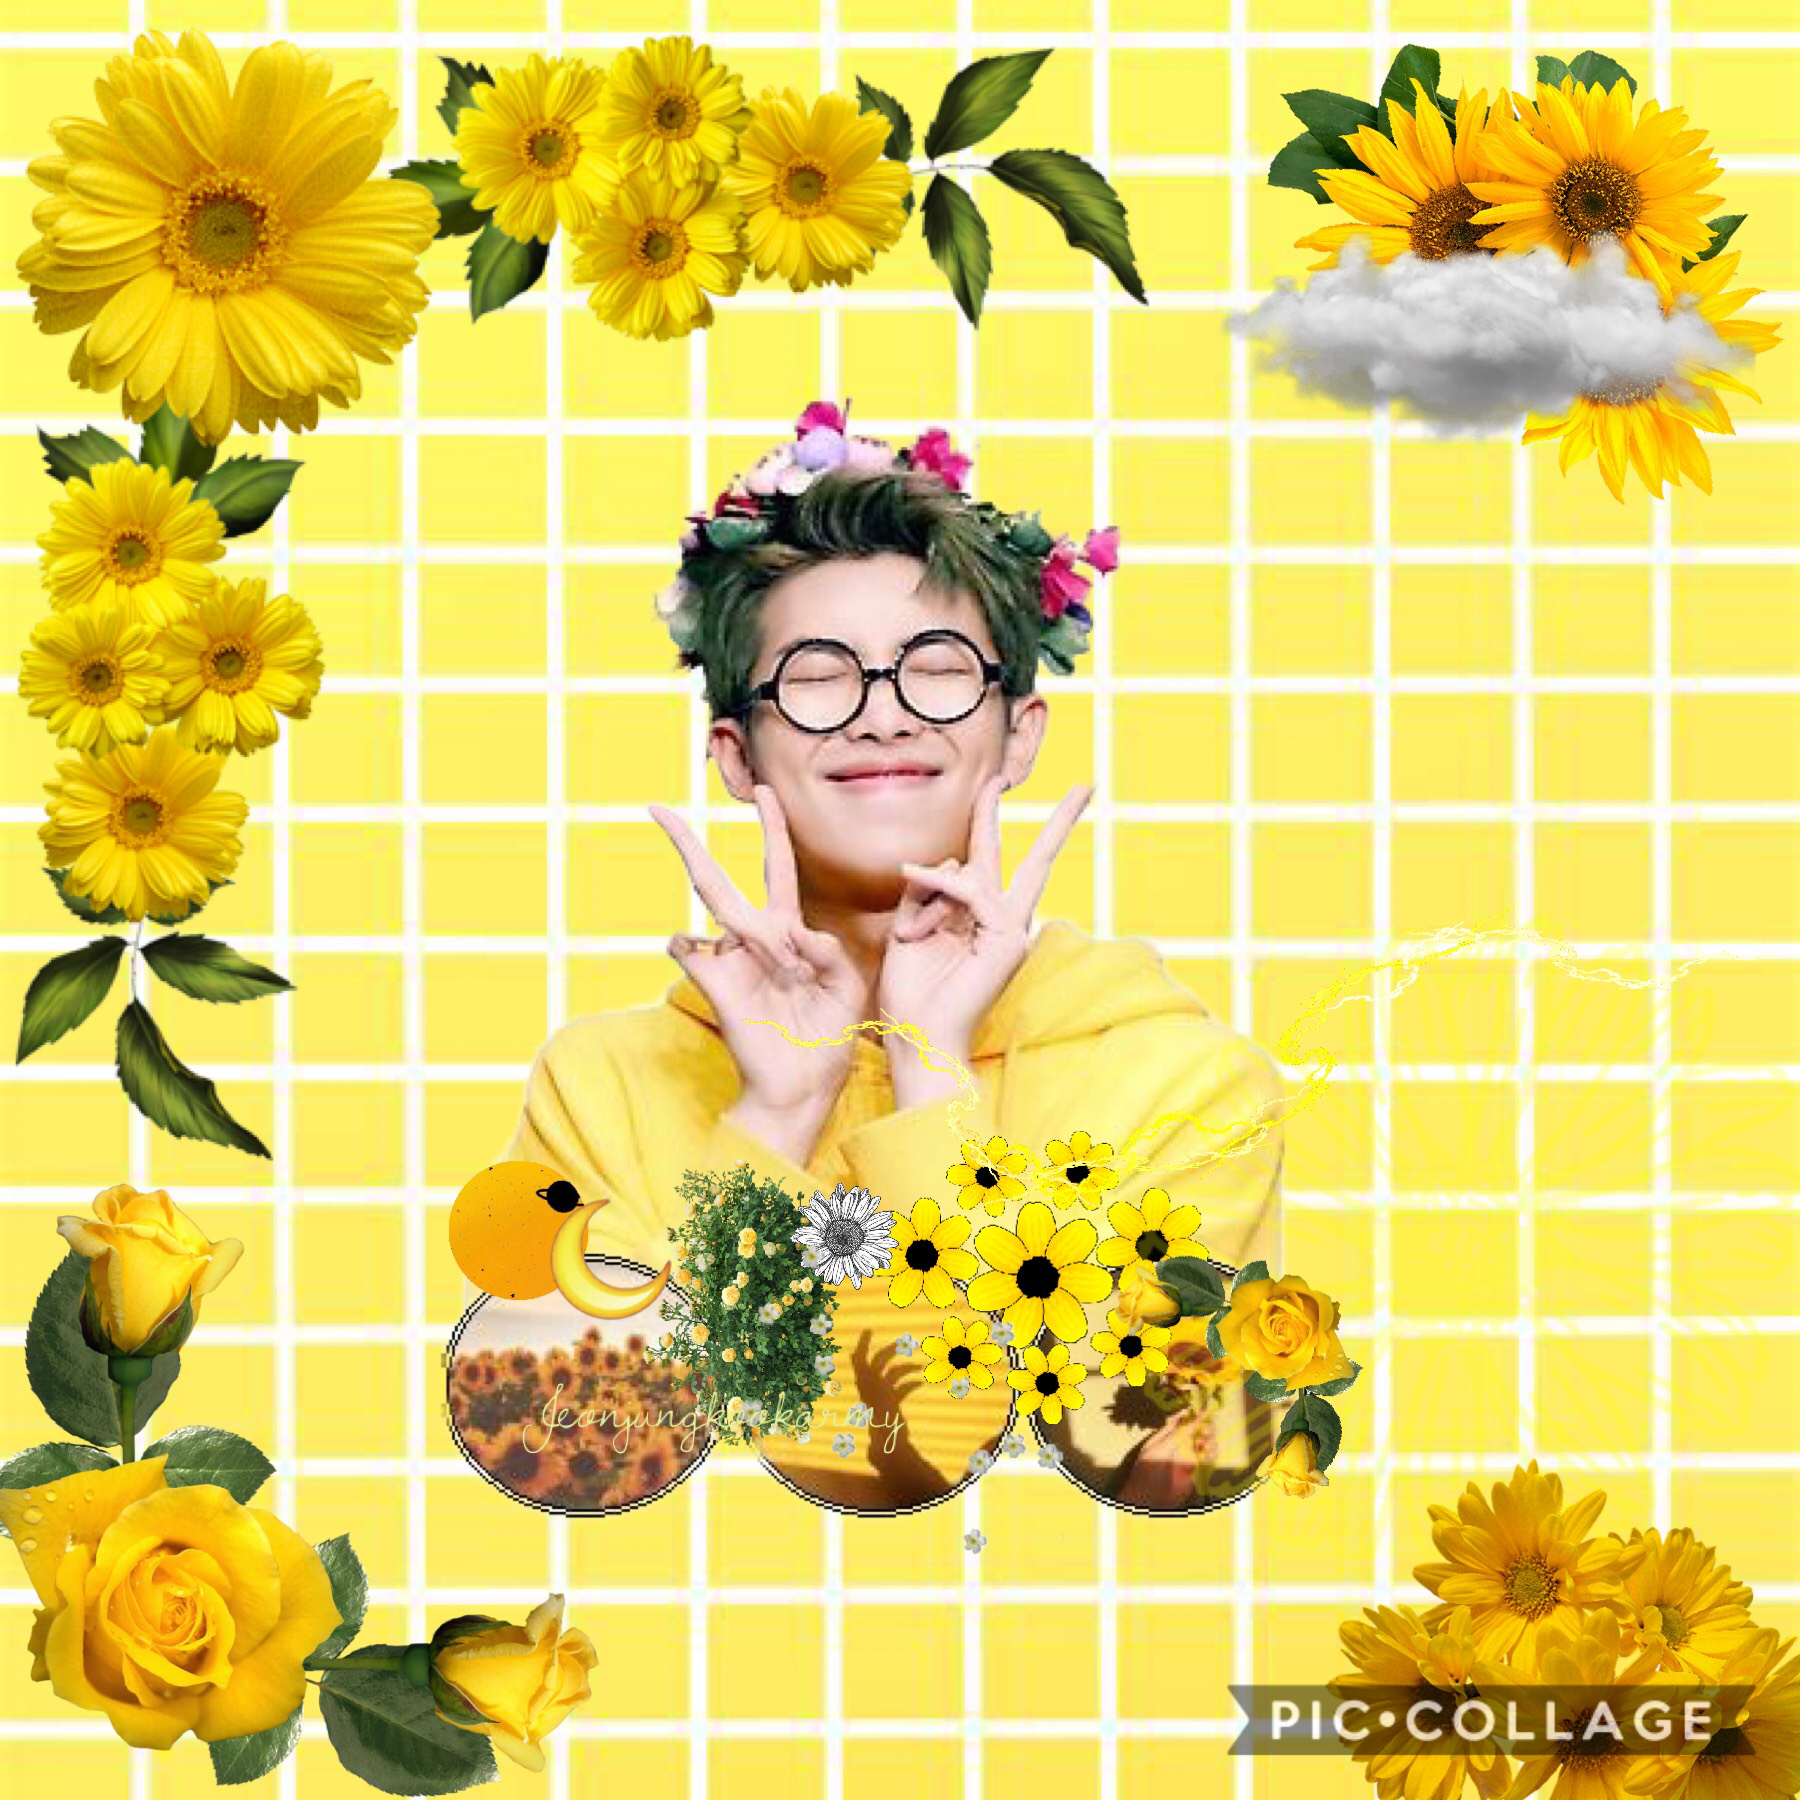 🌻tap🌻 Hello I think this is my last post until August  Because I have one more week of school But I still have my other account @whyyousad Sooo yeah luv you kookies!! Bye~